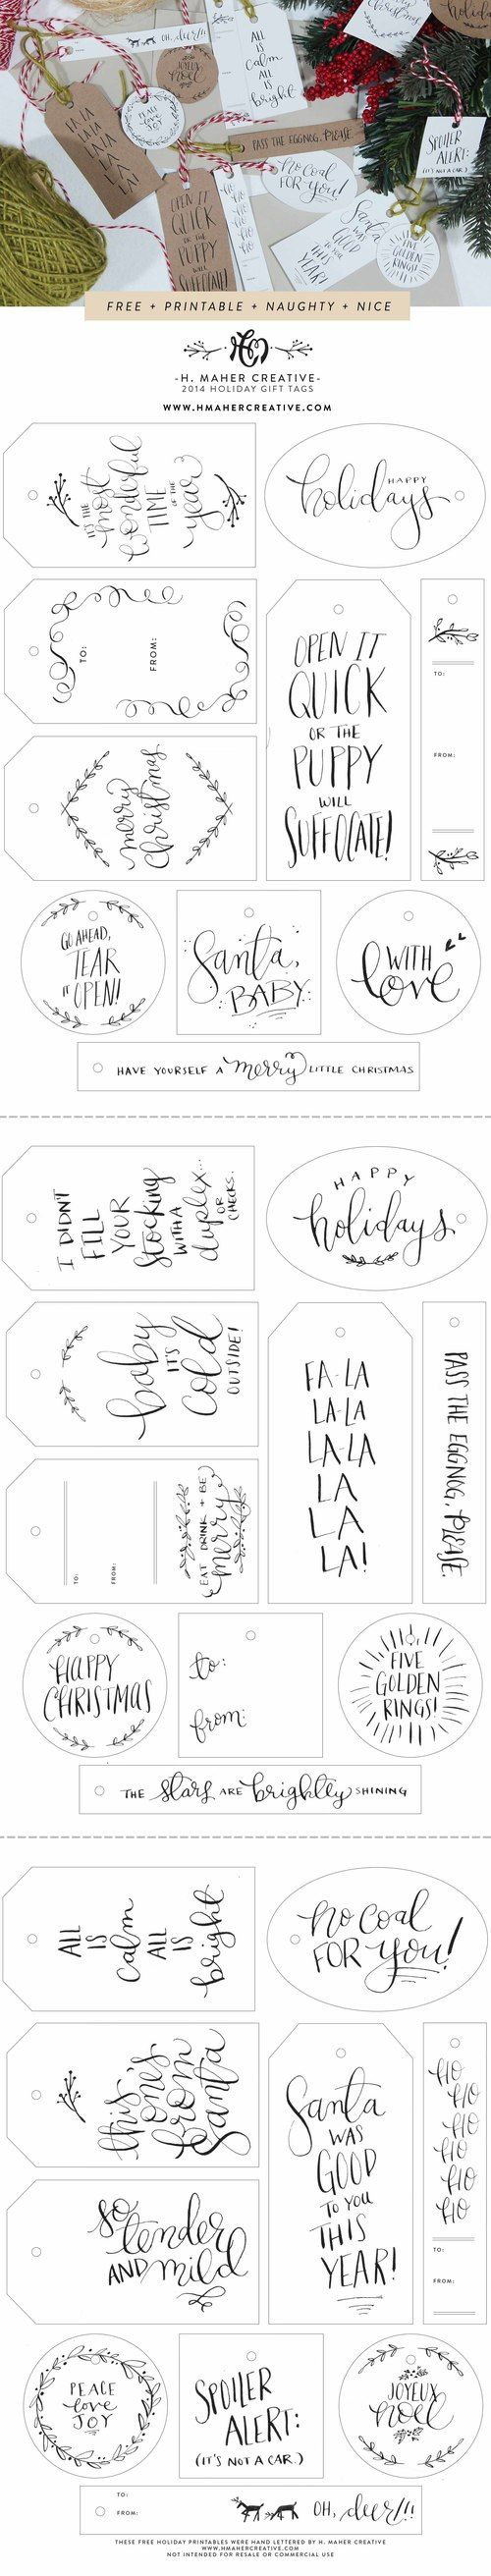 336 best christmas images on pinterest hand lettered holiday gift tags spiritdancerdesigns Gallery